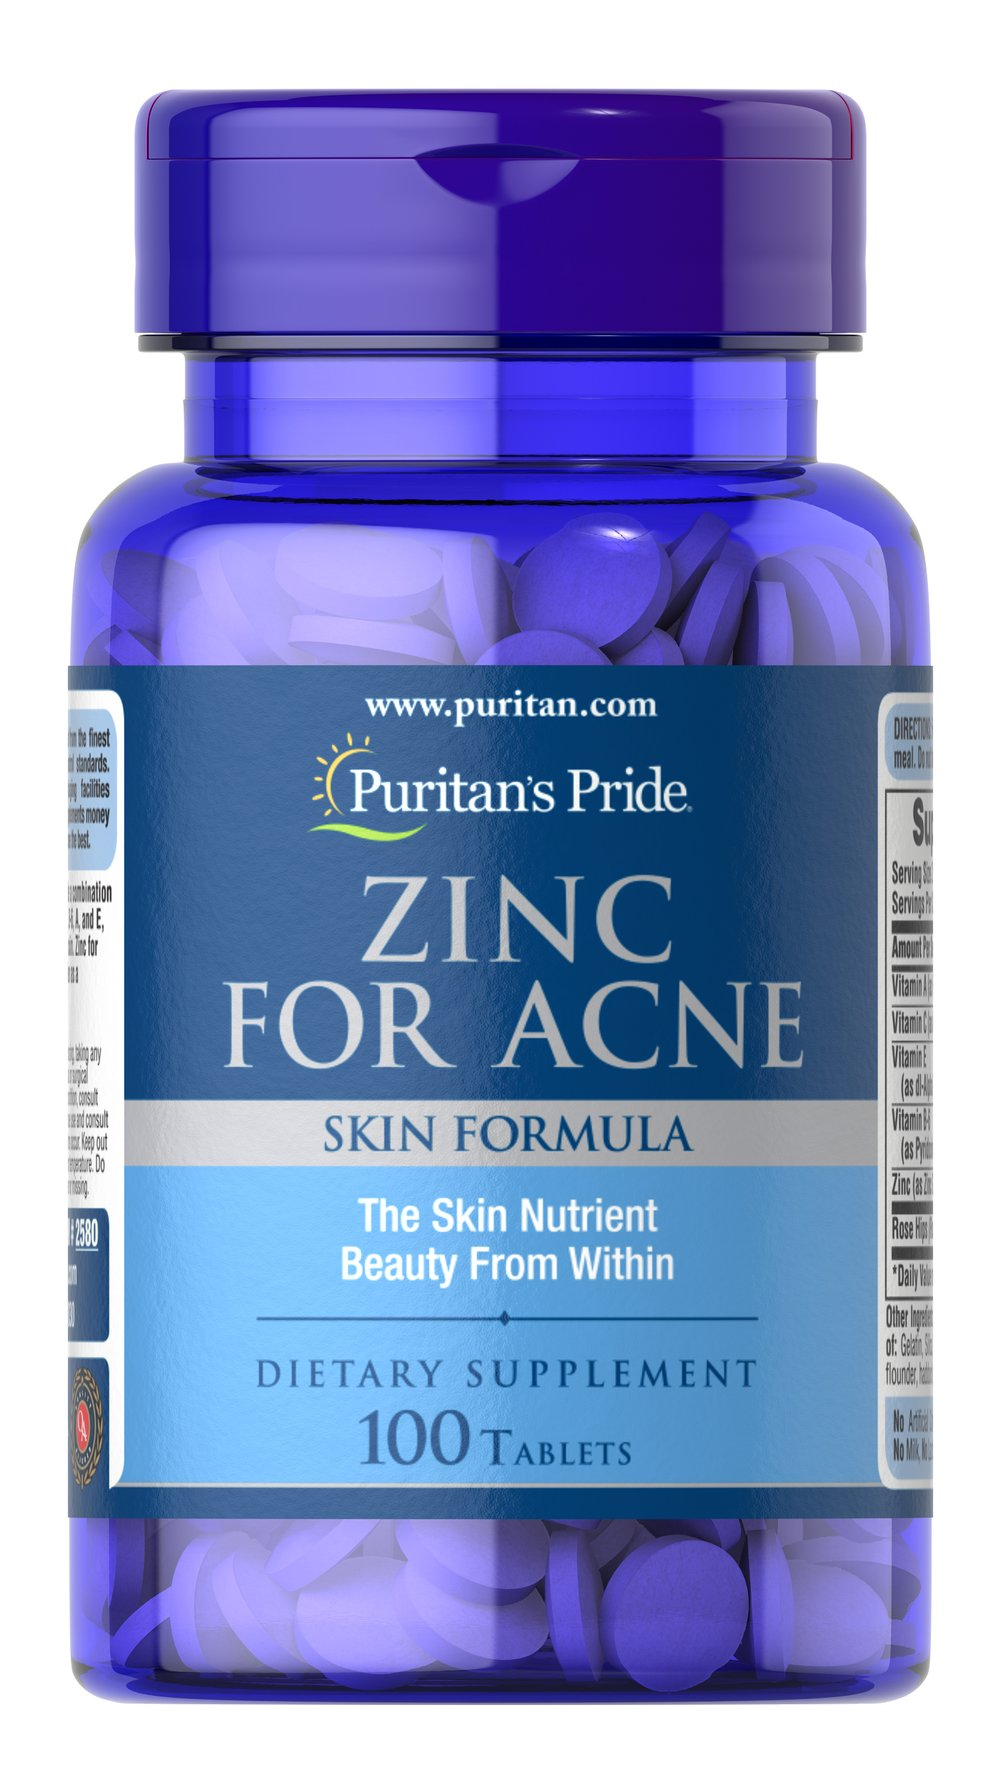 Zinc for Acne <p>Multivitamin with High Potency Zinc Supplement</p><p>Zinc for Acne tablets provide a combination of nutrients including zinc and Vitamins C, B-6, A, and E, specially blended for your skin. Zinc for Acne is designed to be taken as a supplement.</p> 100 Tablets  $12.29